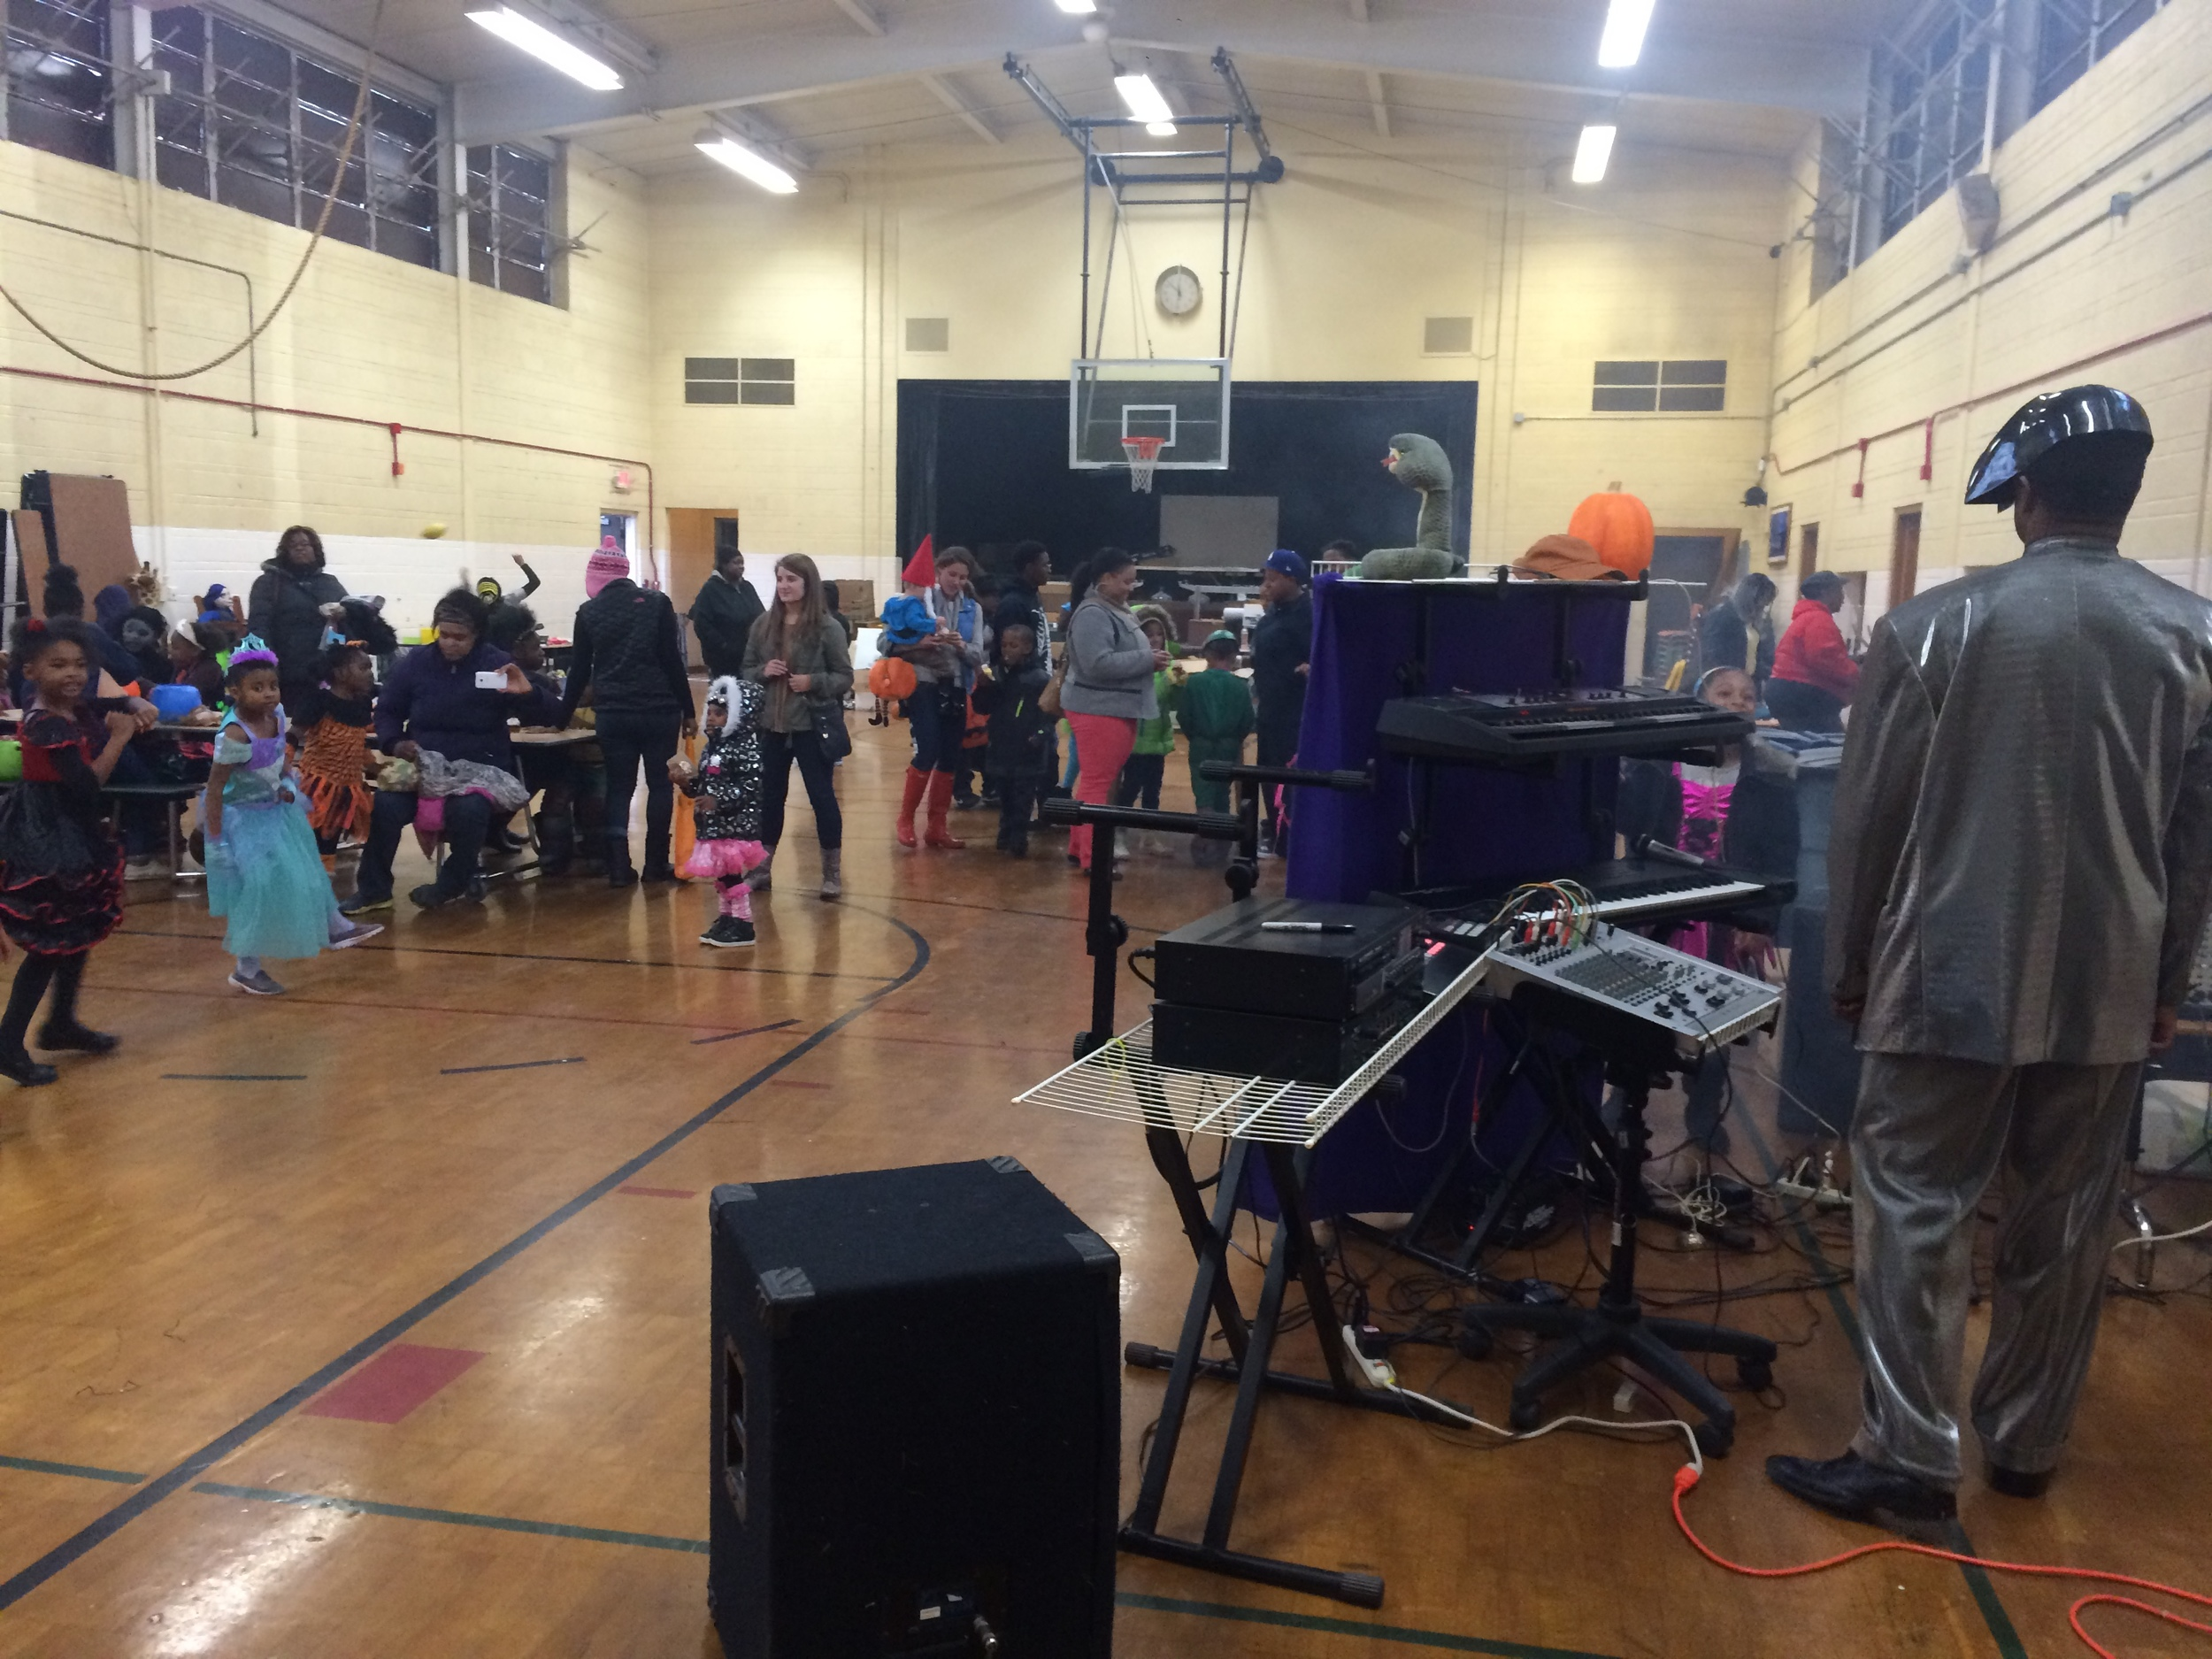 DAA students having a blast at the Harvest Festival thrown by DAA's parents in October.